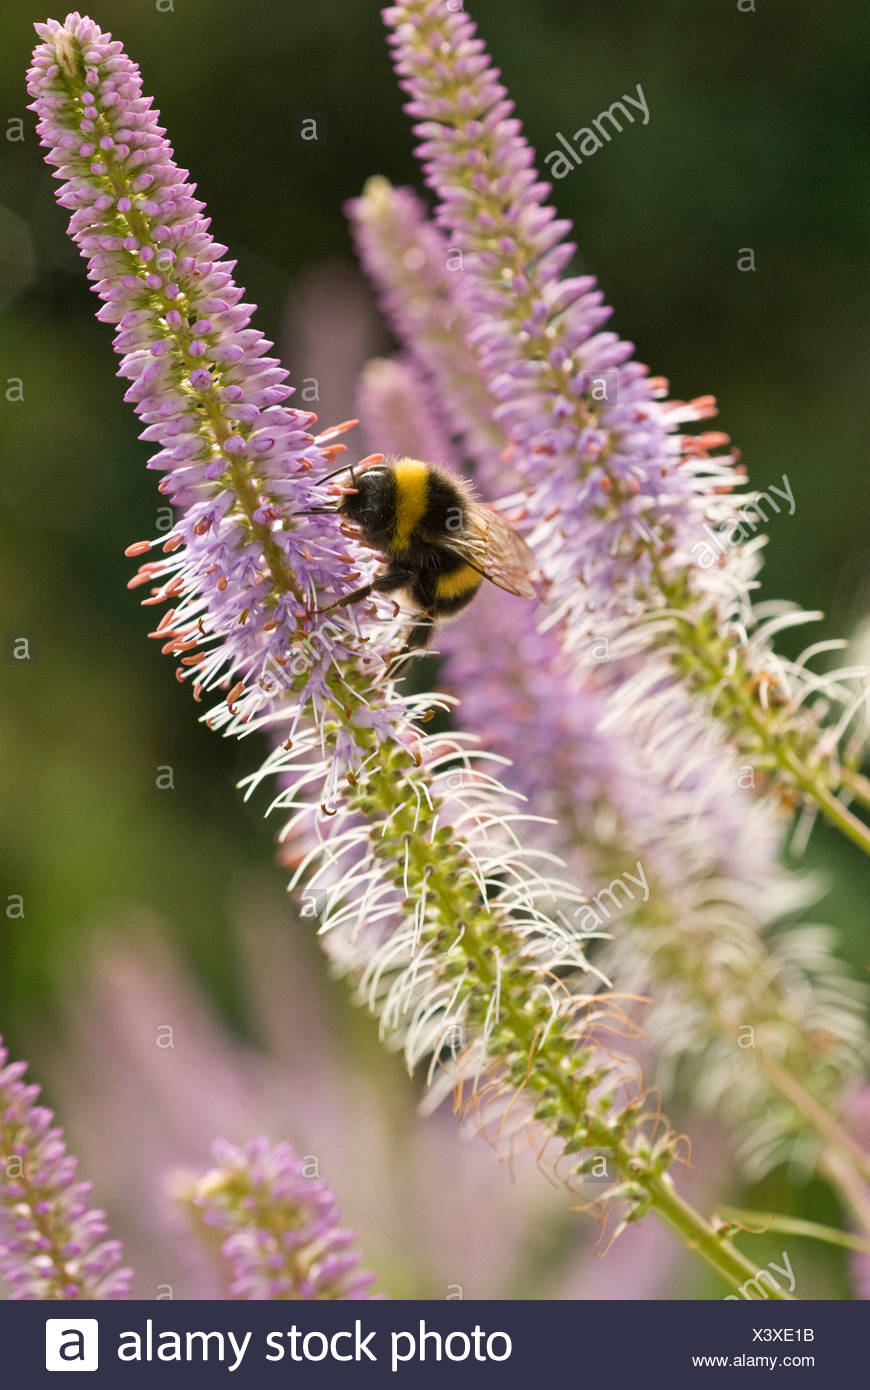 Veronicastrum vitginicum 'Fascination', Veronica - Stock Image